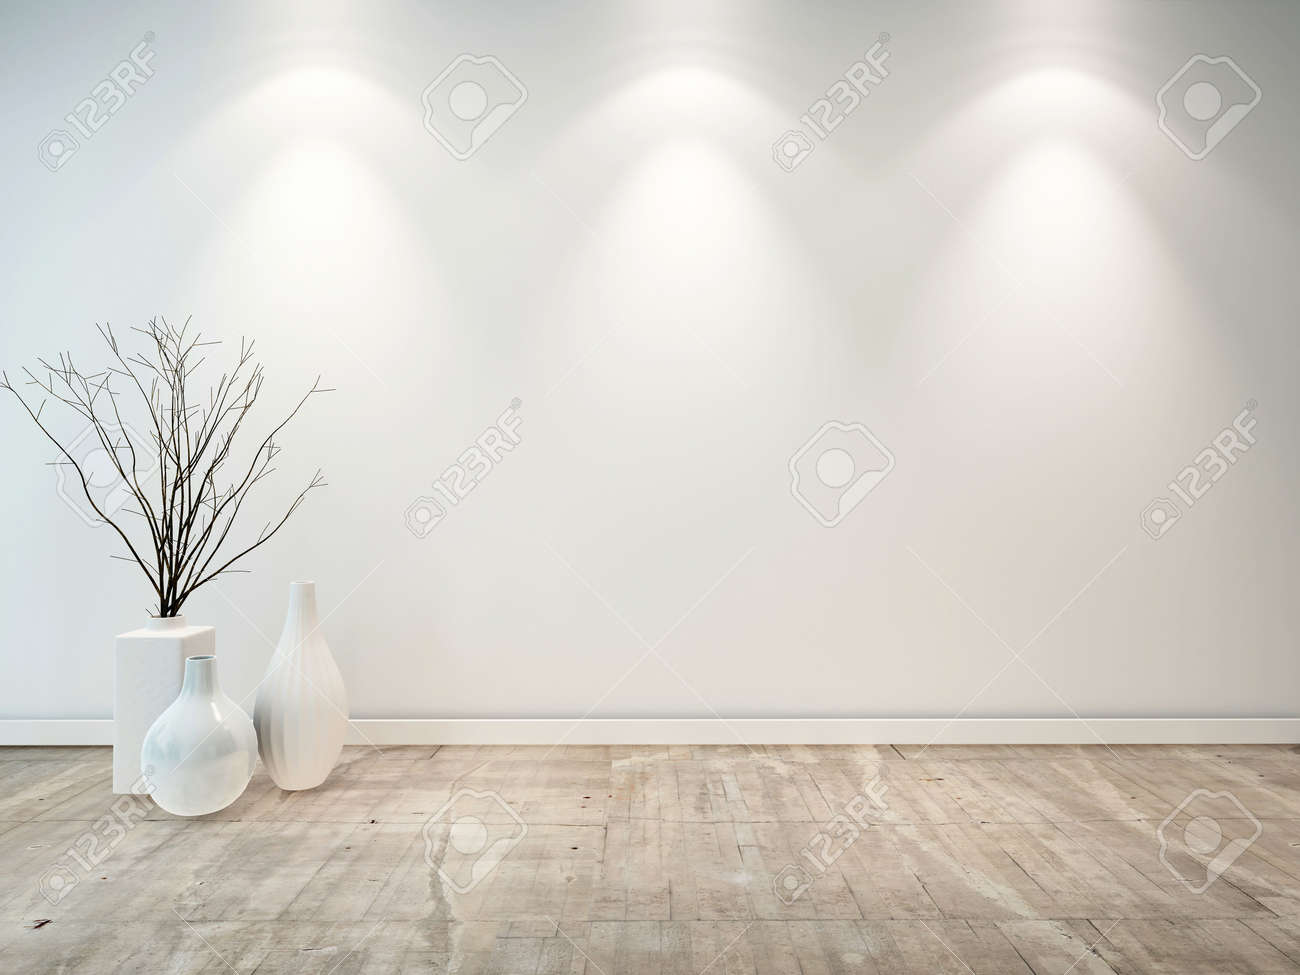 Empty neutral grey room with ornamental white vases and three down lights illuminating the wall, good architectural background for furniture placement - 28687313